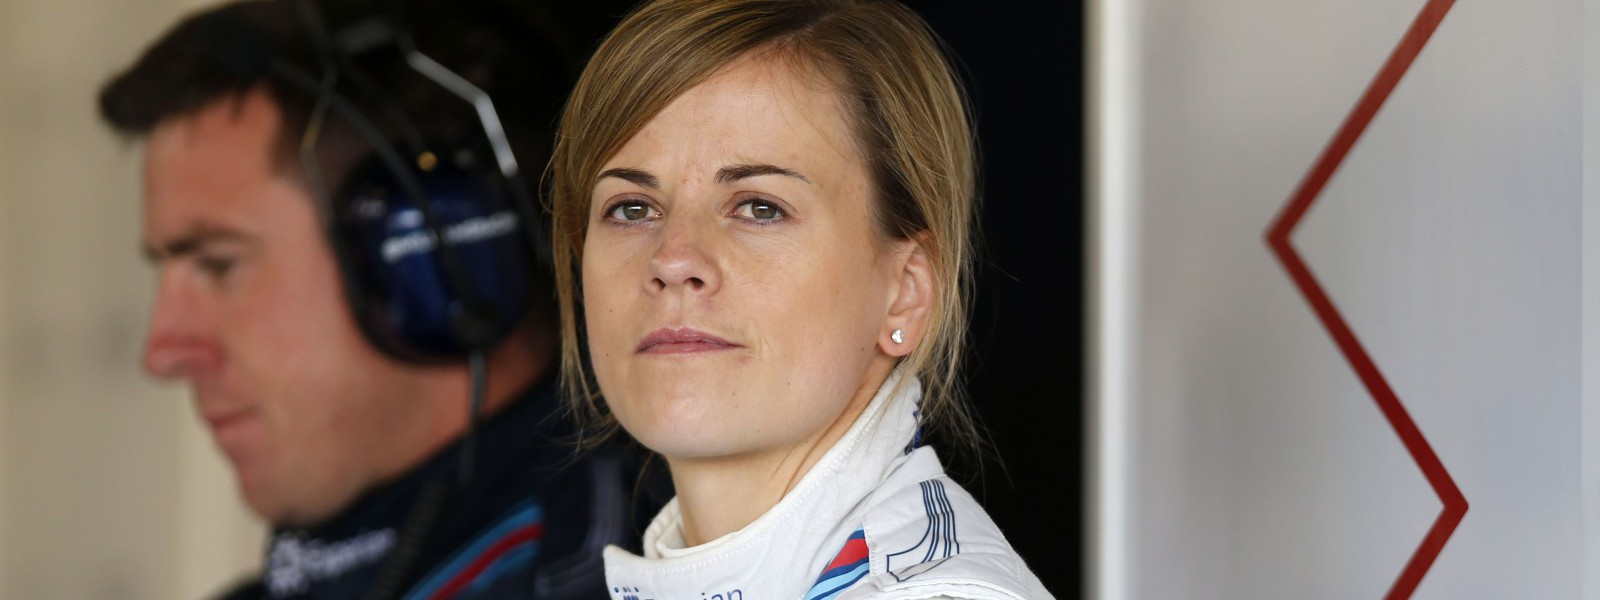 Motorsports: FIA Formula One World Championship 2014, Grand Prix of Great Britain,   #41 Susie Wolff (GBR, Williams Martini Racing),  *** Local Caption *** +++ www.hoch-zwei.net +++ copyright: HOCH ZWEI +++